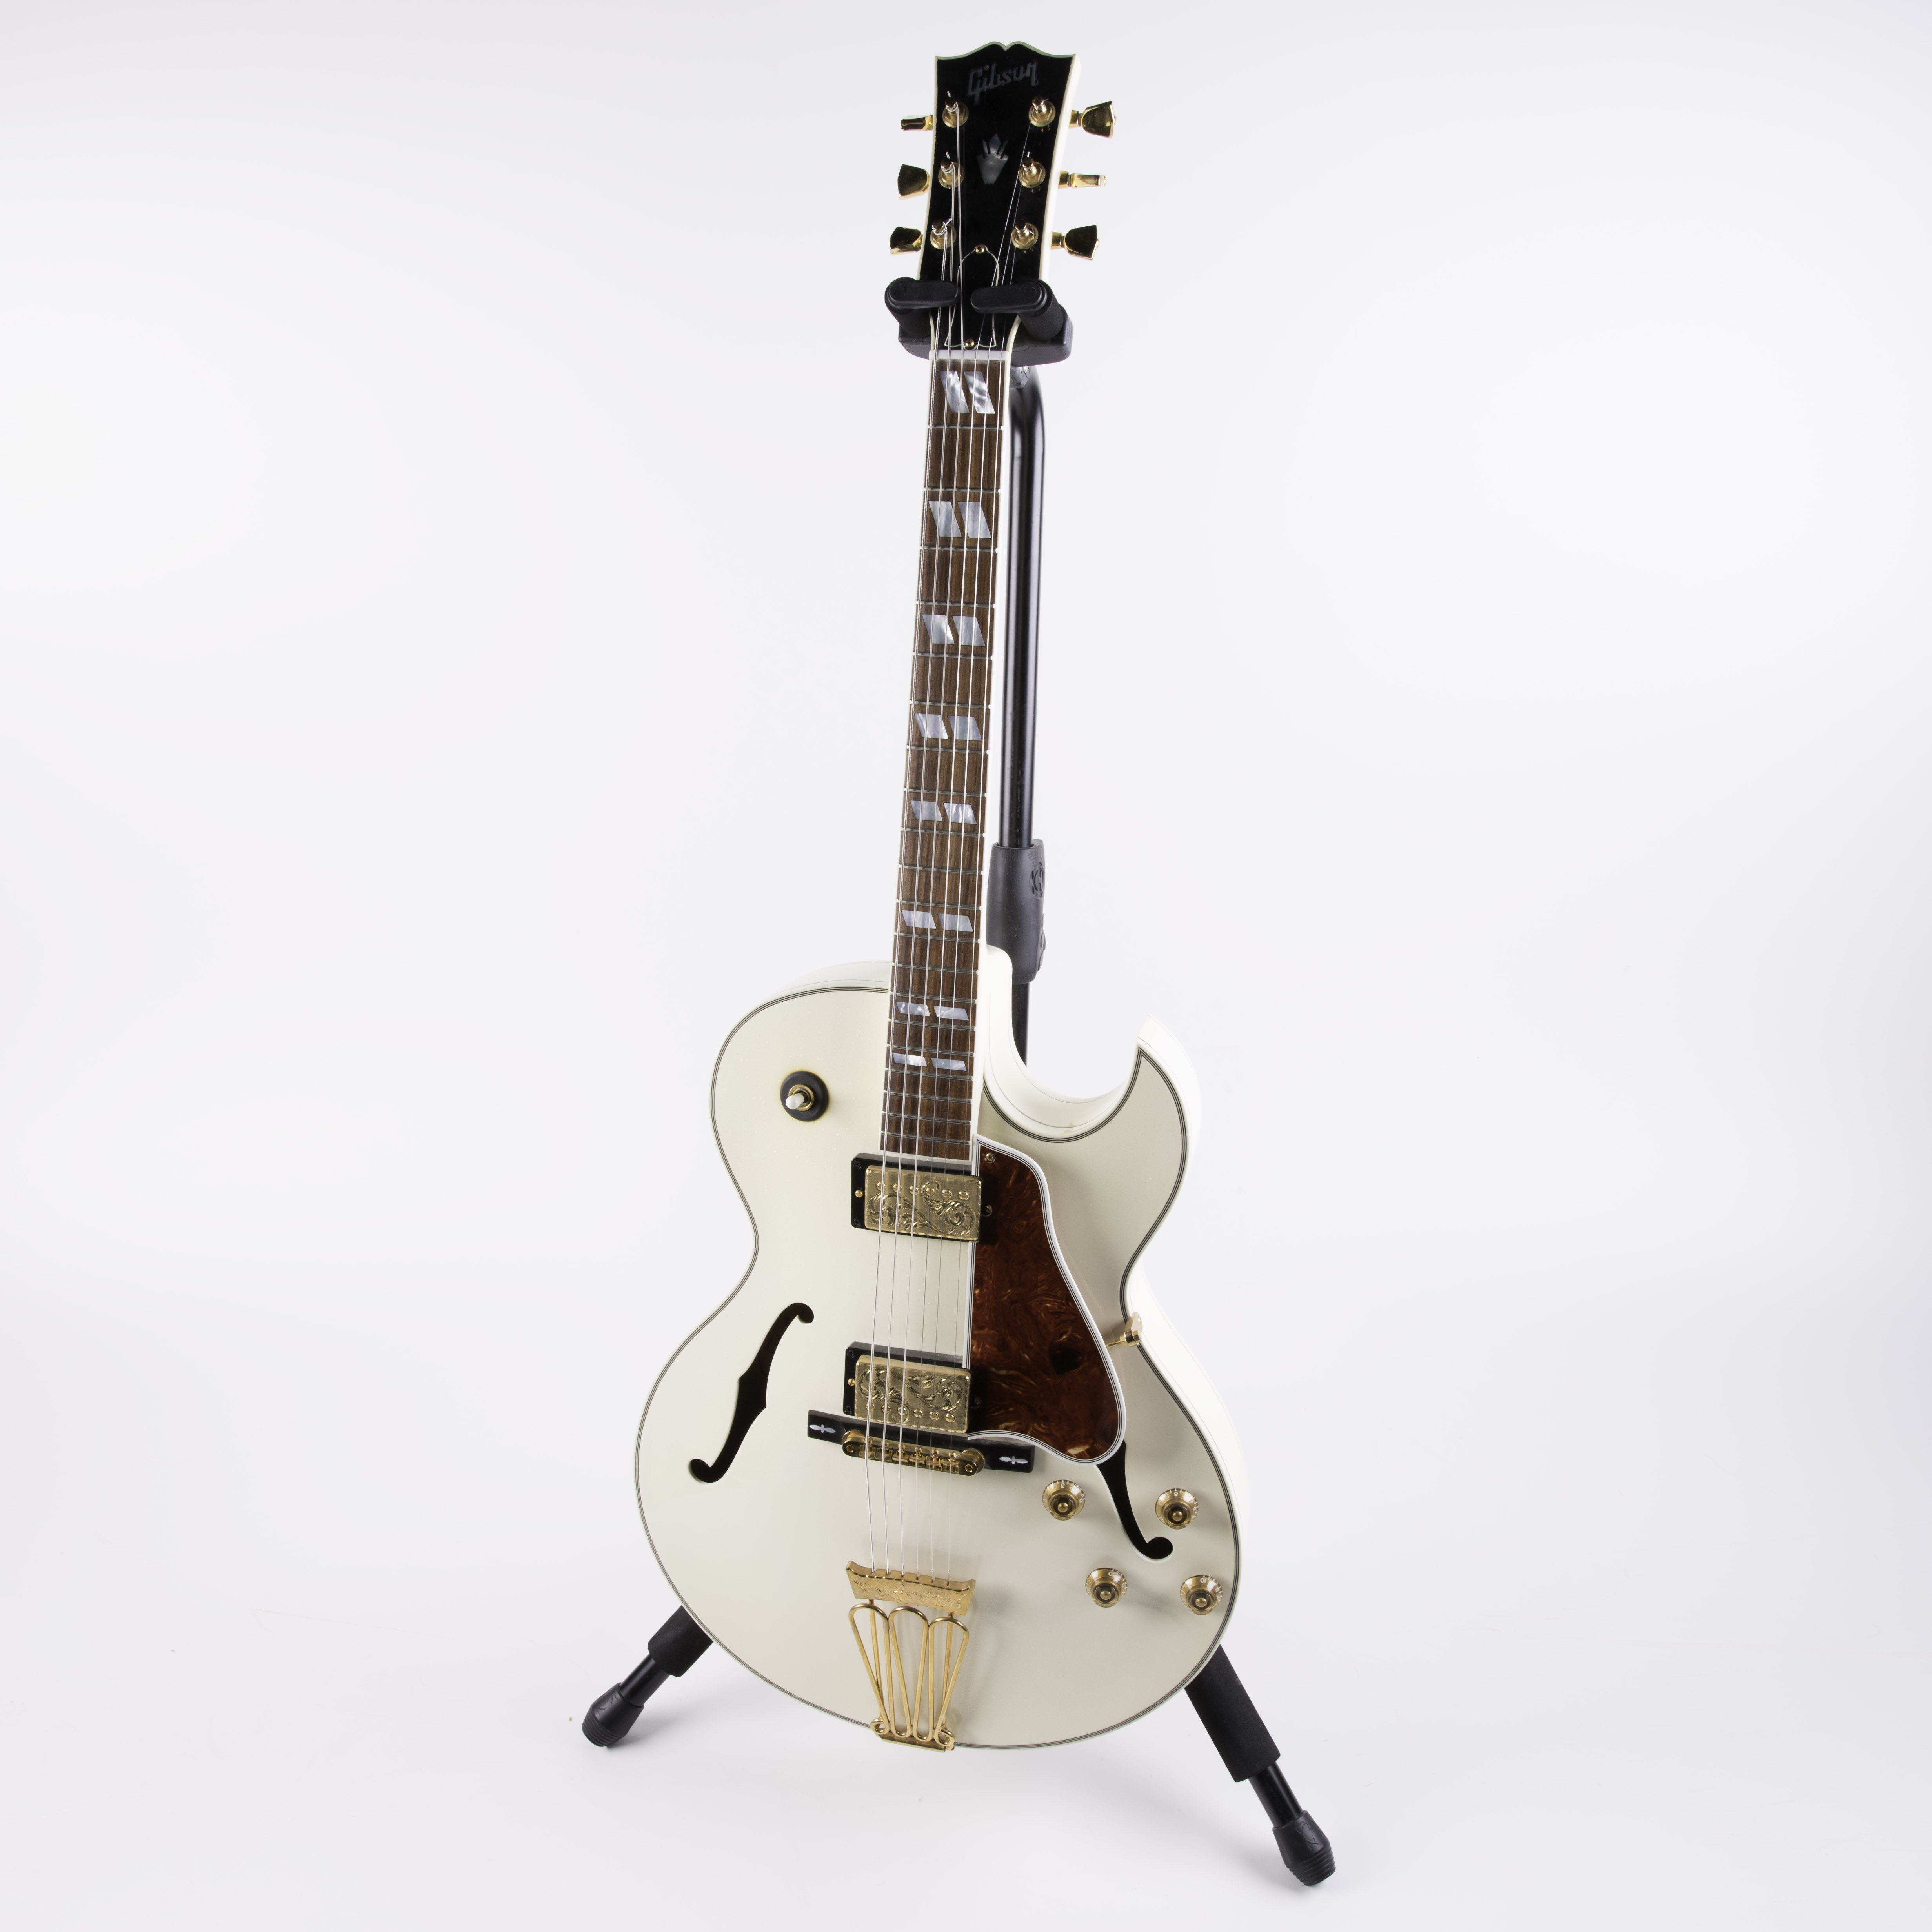 Gibson Custom Shop L-4 10th Anniversary Diamond White Sparkle Guitar